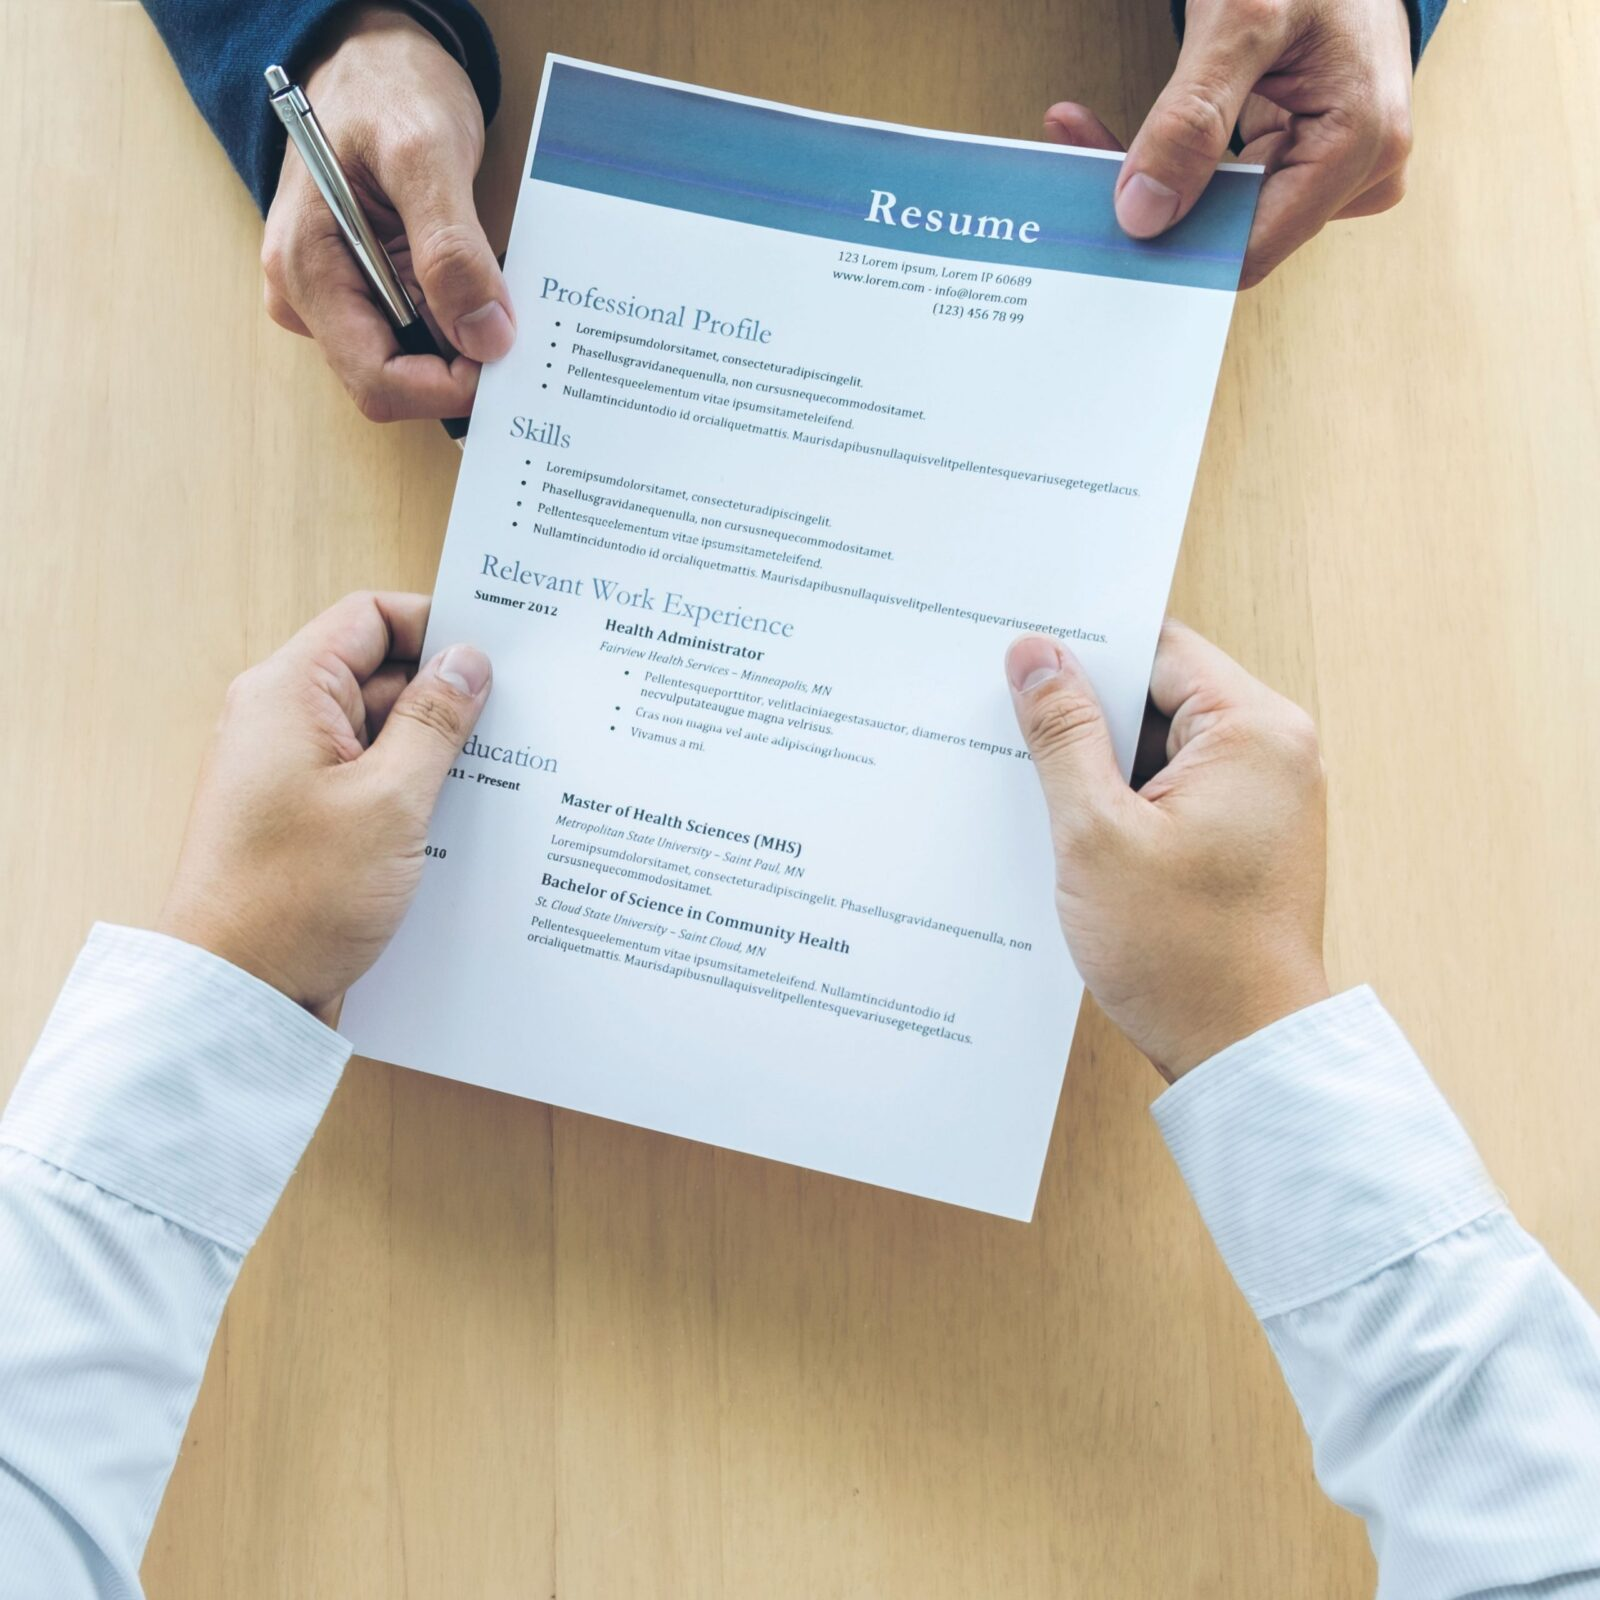 Find a job with a resume build is simple and efficient